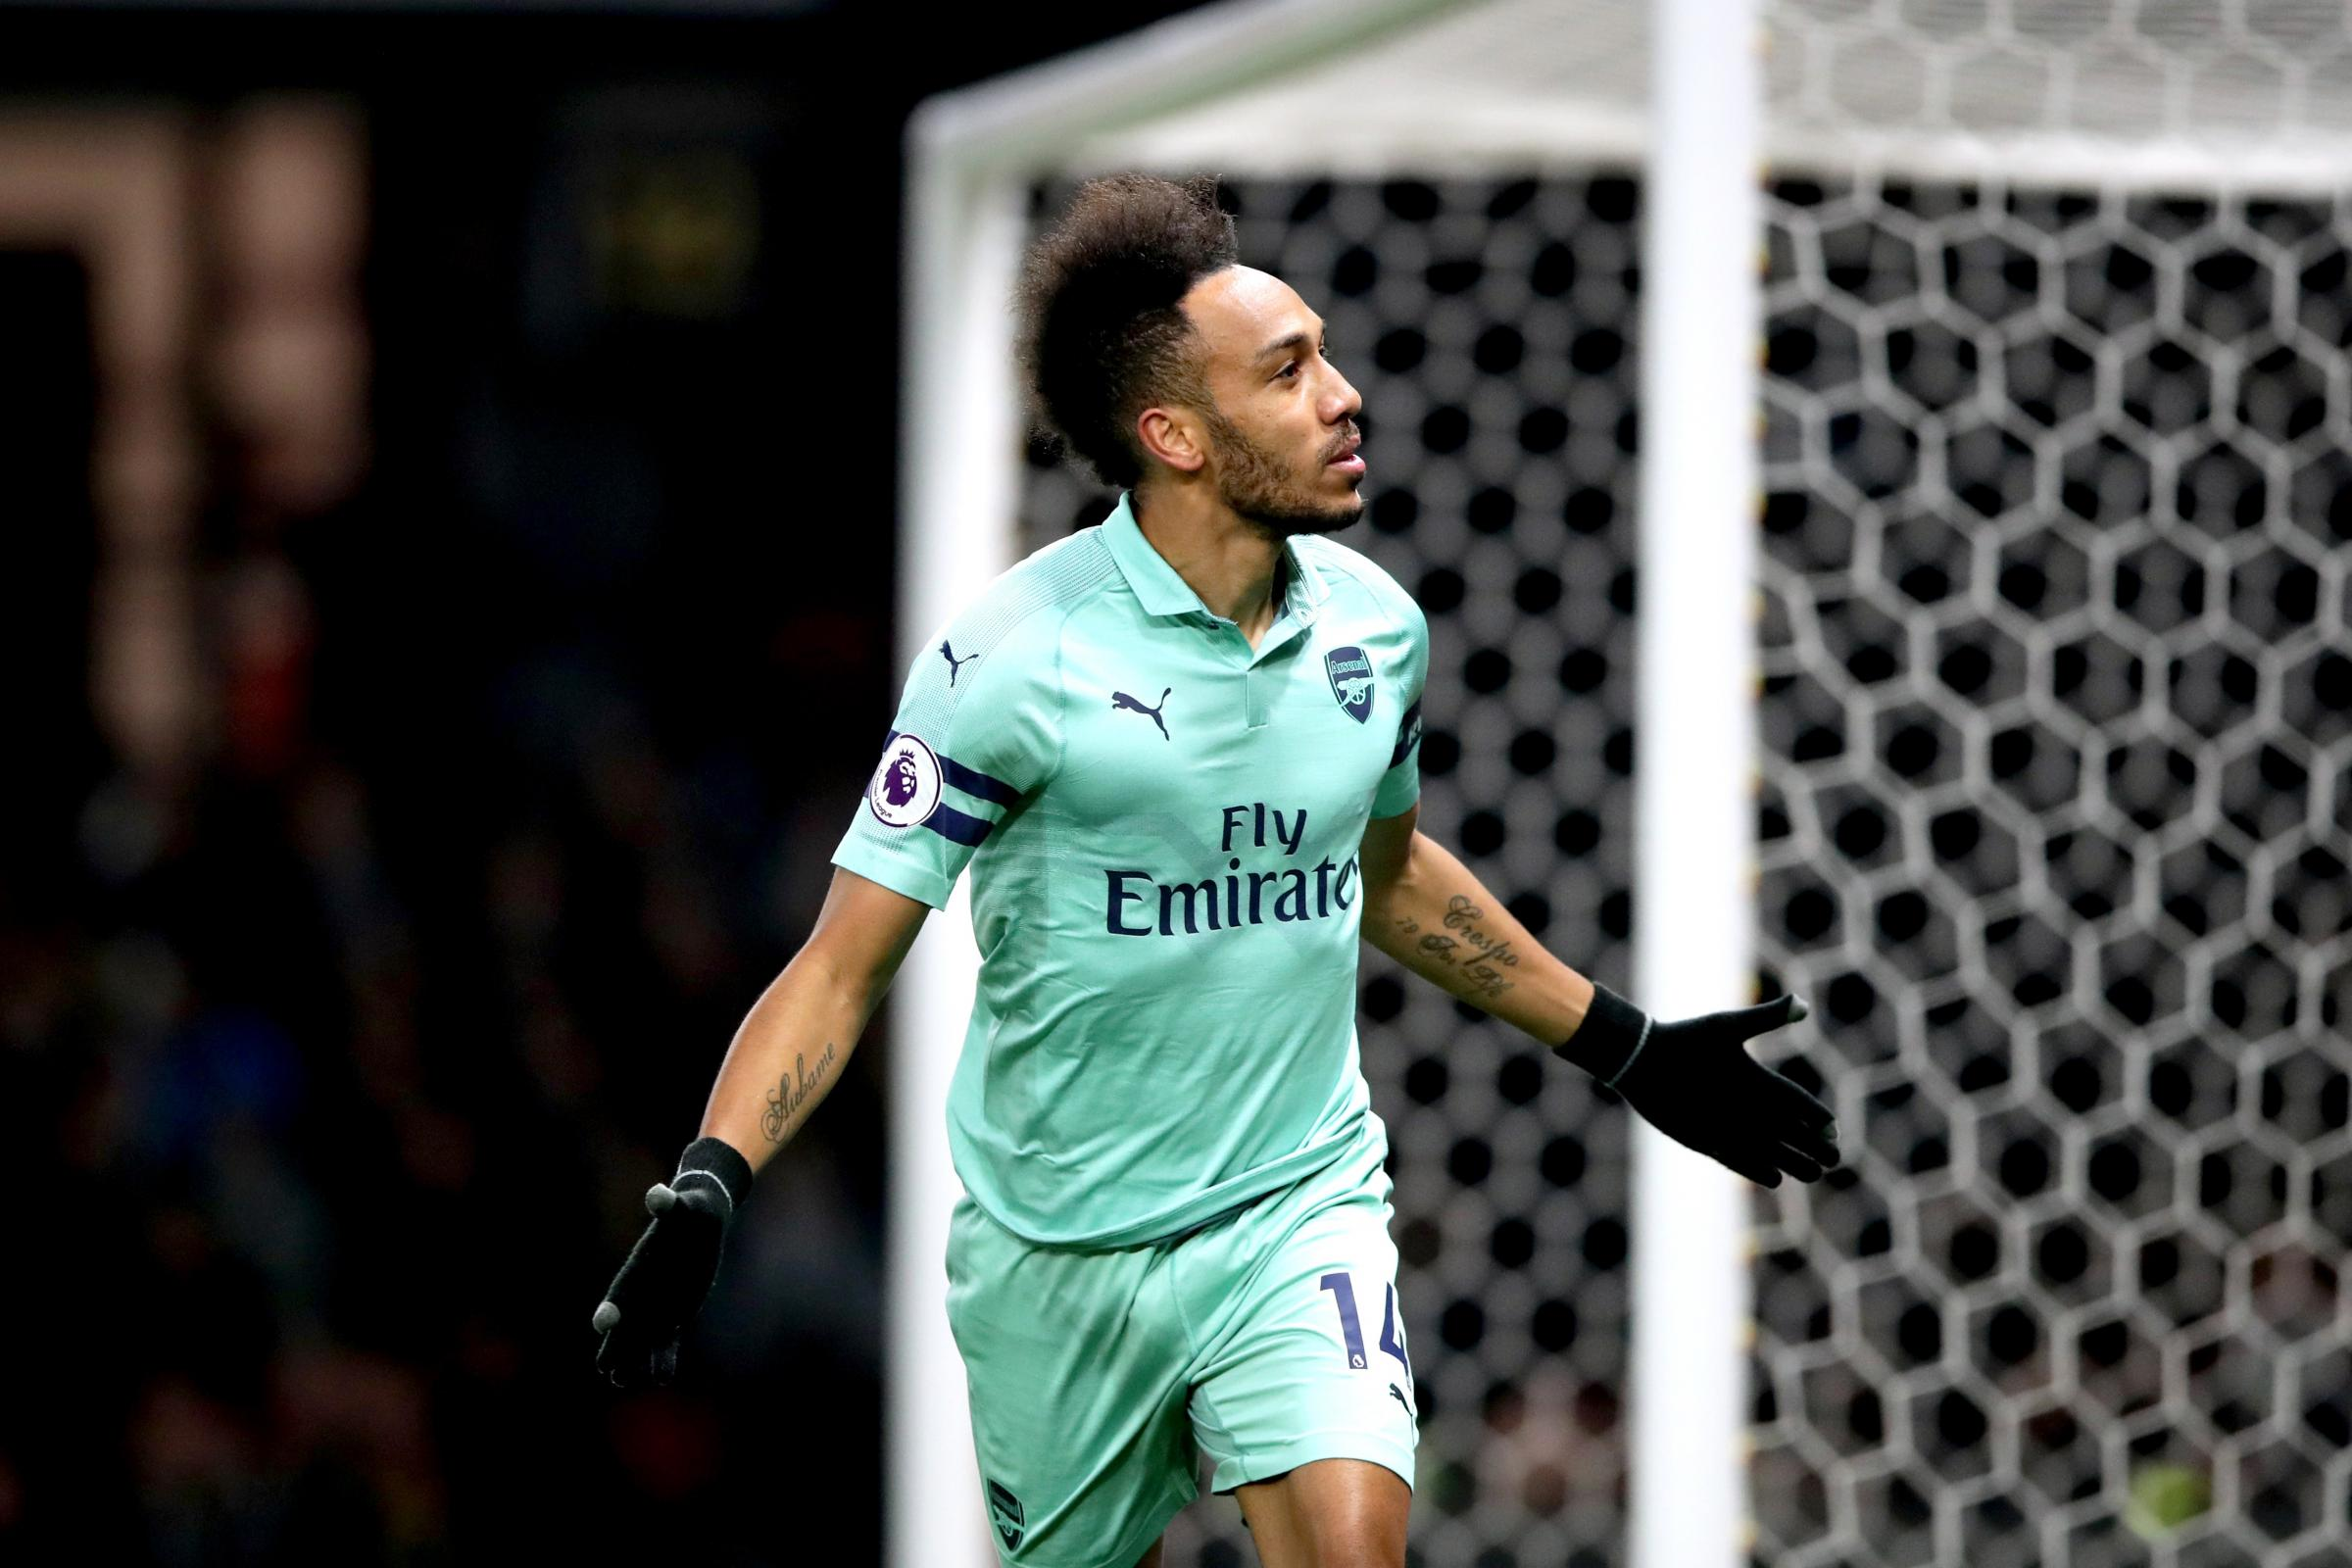 Pierre-Emerick Aubameyang's goal at Watford put Arsenal back into the top four